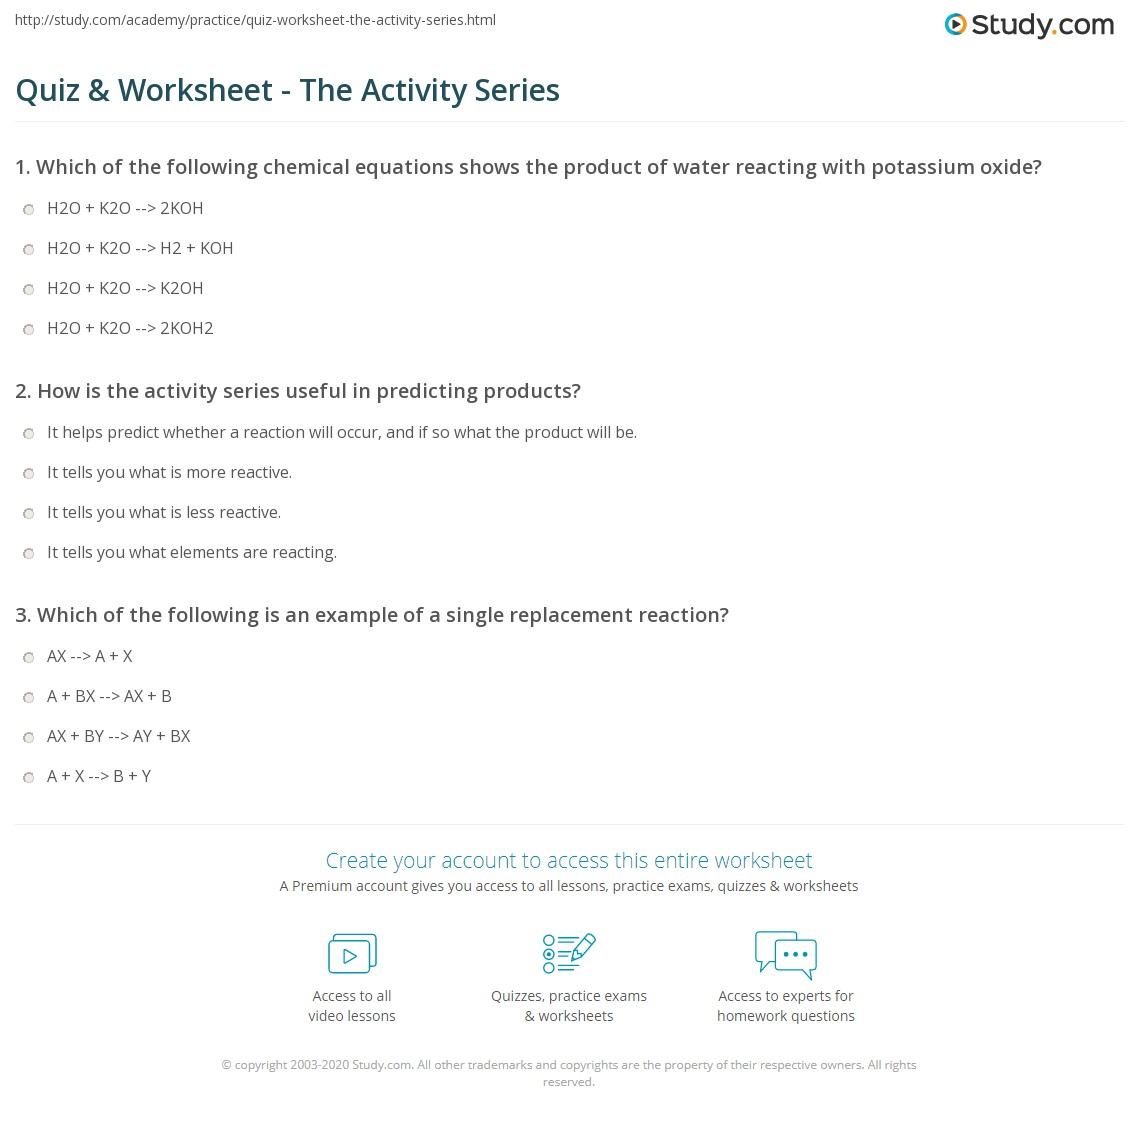 Aldiablosus  Mesmerizing Quiz Amp Worksheet  The Activity Series  Studycom With Interesting Print The Activity Series Predicting Products Of Single Displacement Reactions Worksheet With Appealing Pearl Harbor Worksheets Also Algebra Order Of Operations Worksheet In Addition Theoretical And Experimental Probability Worksheet Answers And Free Cutting Worksheets As Well As Compare And Contrast Reading Worksheets Additionally First Grade Ela Worksheets From Studycom With Aldiablosus  Interesting Quiz Amp Worksheet  The Activity Series  Studycom With Appealing Print The Activity Series Predicting Products Of Single Displacement Reactions Worksheet And Mesmerizing Pearl Harbor Worksheets Also Algebra Order Of Operations Worksheet In Addition Theoretical And Experimental Probability Worksheet Answers From Studycom